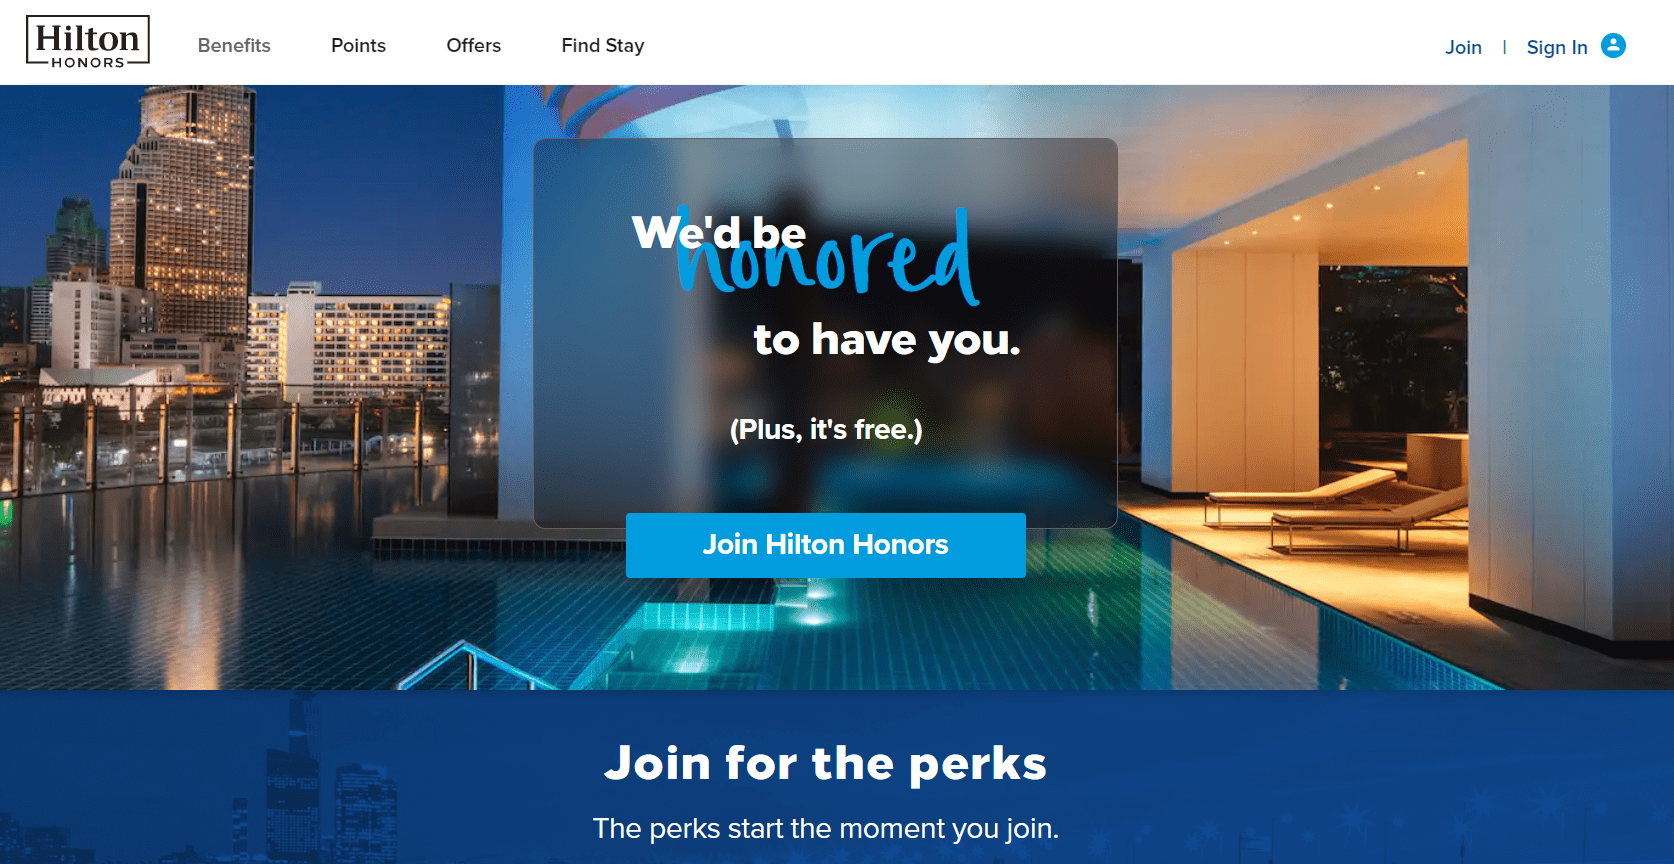 The main page of the Hilton Honors coalition loyalty program